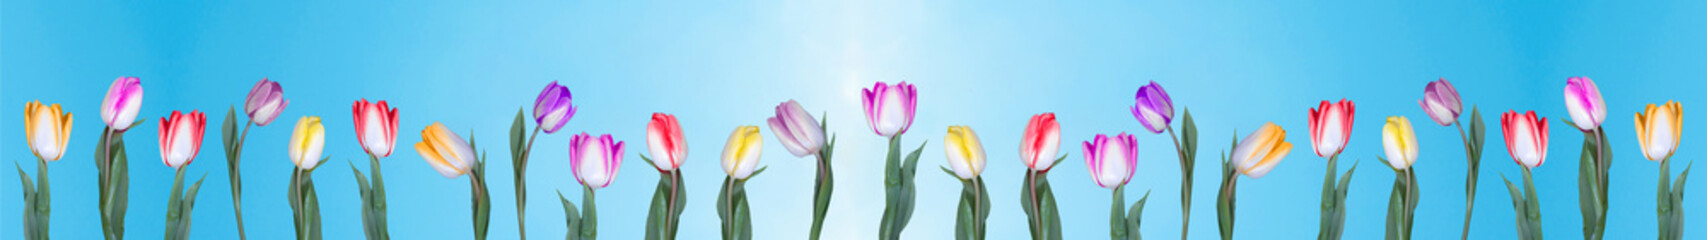 Photo sur Plexiglas Tulip Many multicolored tulips on a tulip field isolated on blue sky background banner panorama long